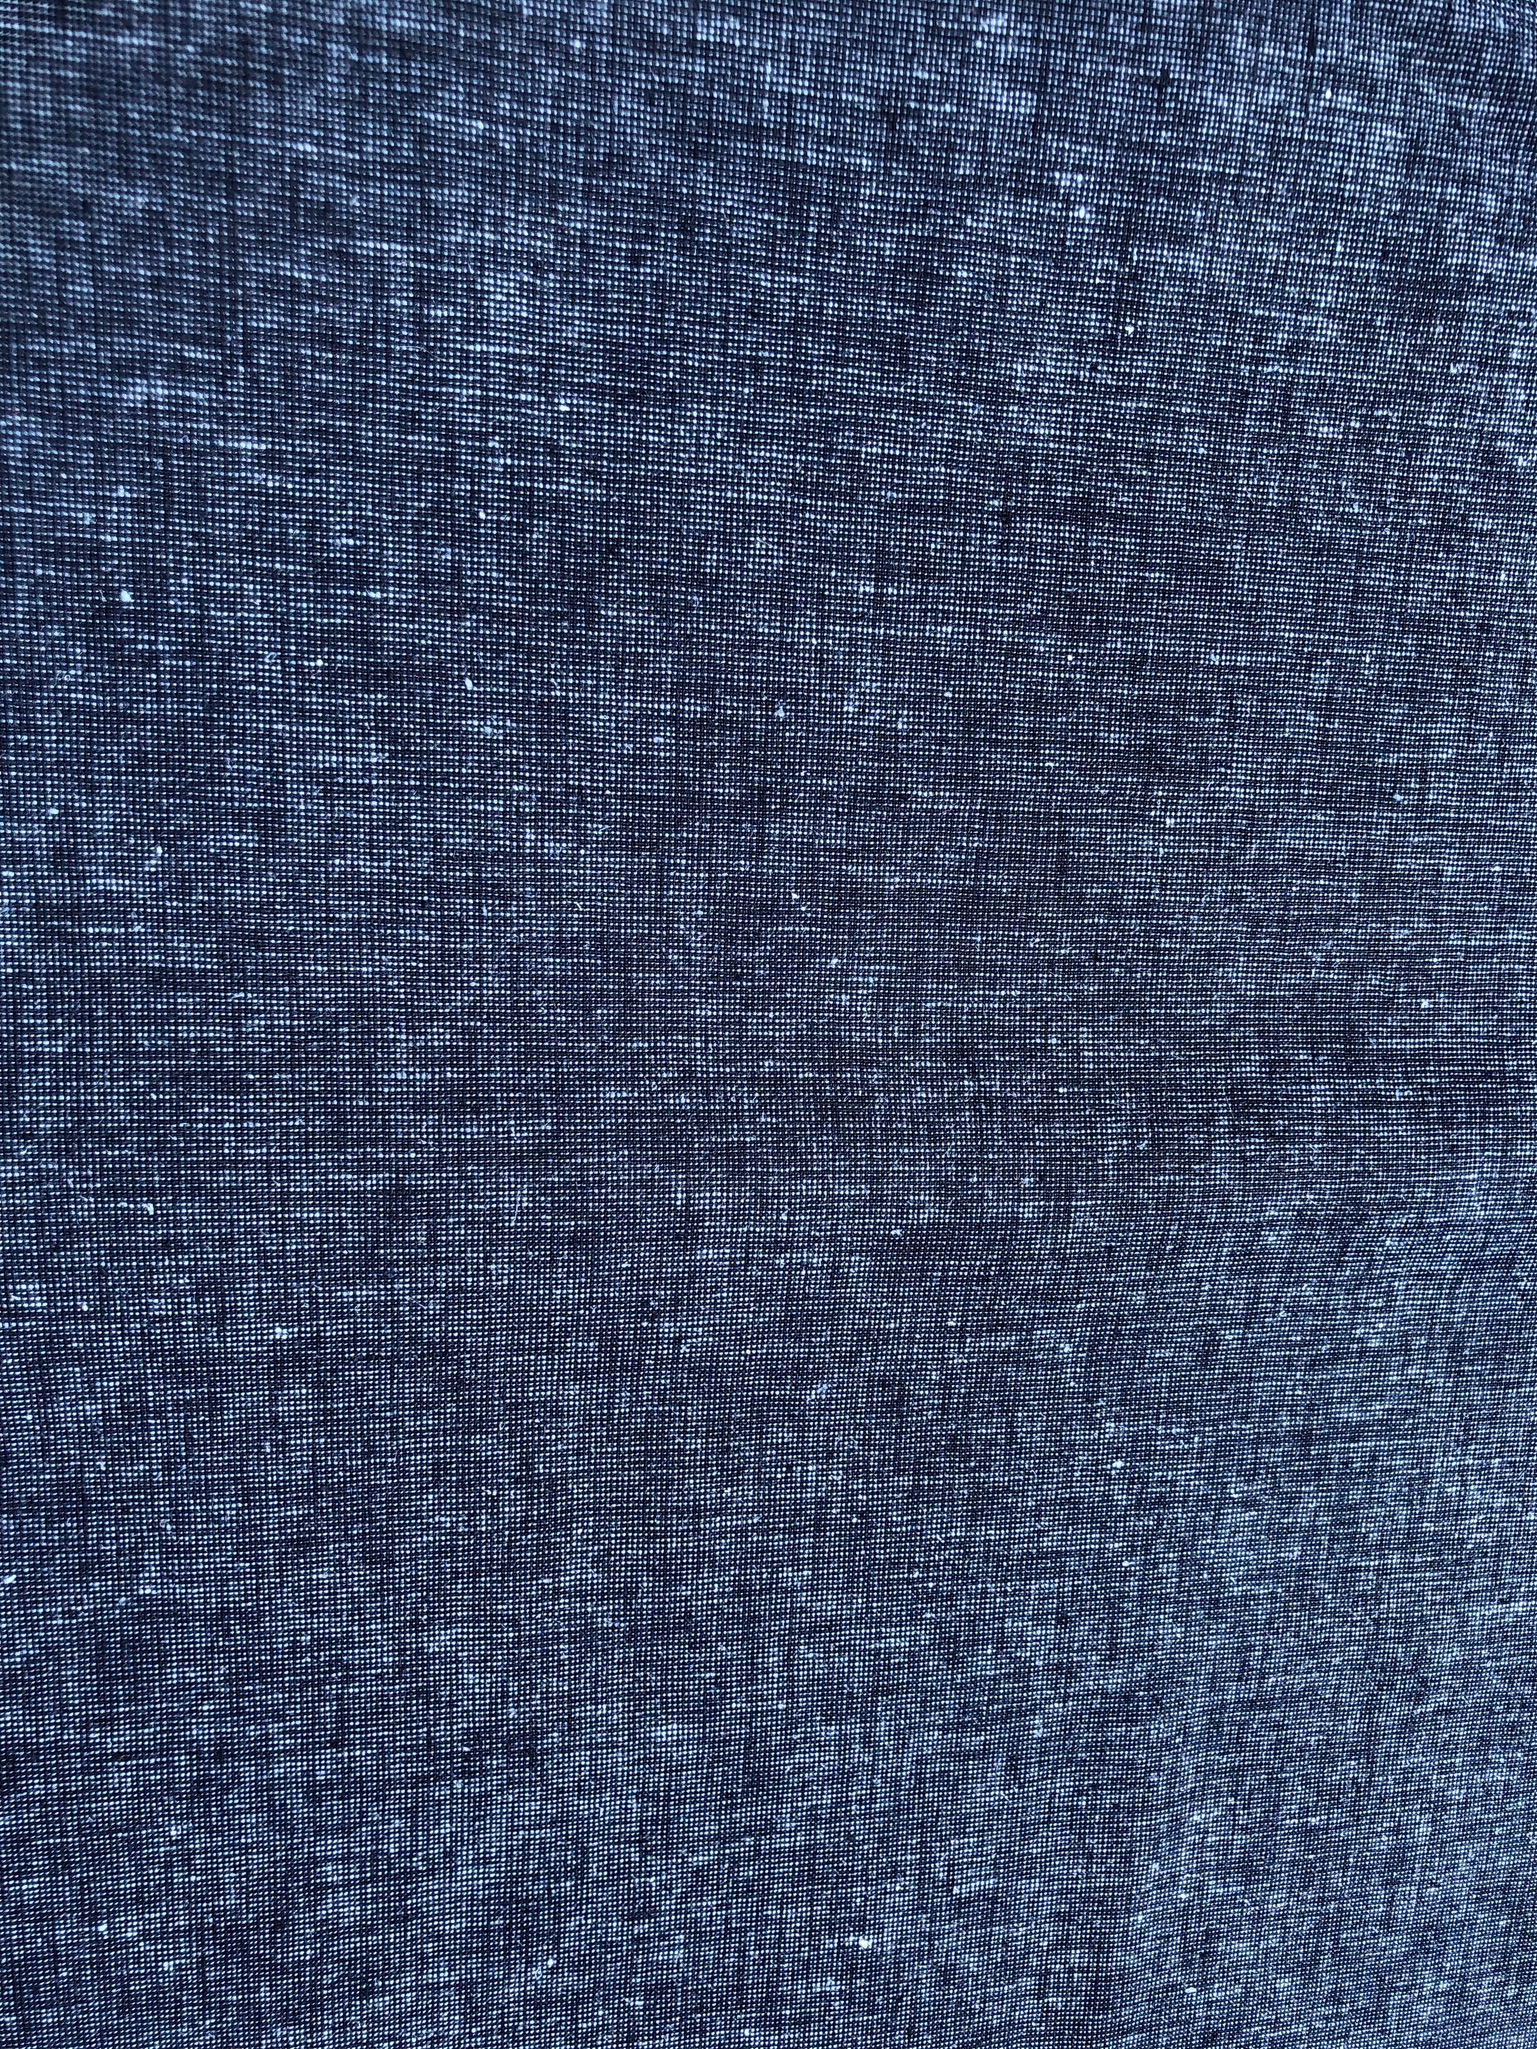 Denim Blue Linen/Cotton mix